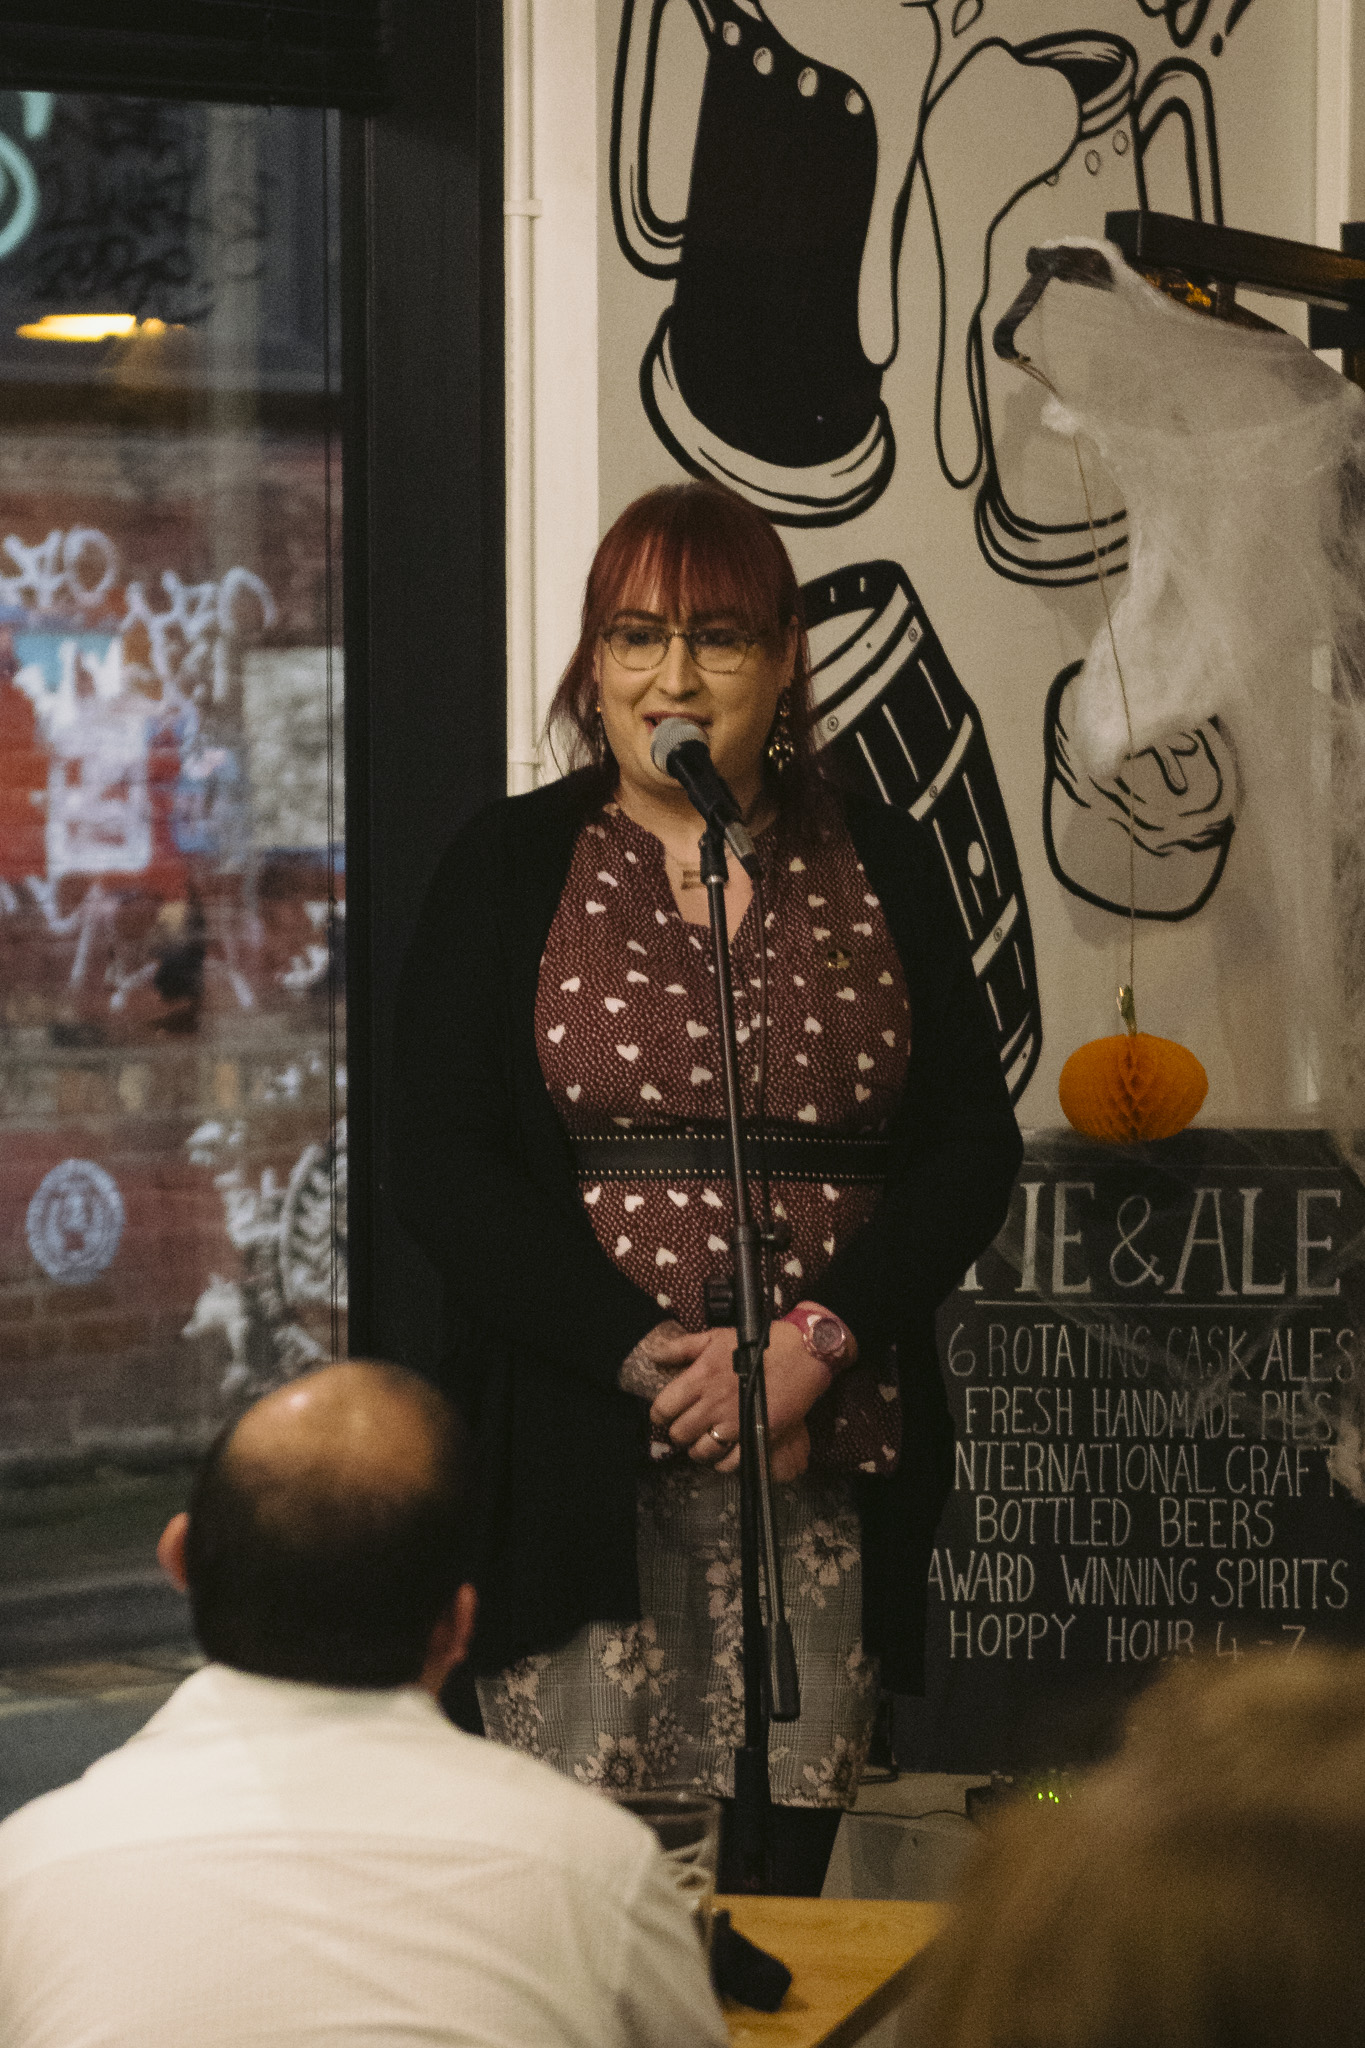 Charlotte Istance-Tamblin shares her story at the Pie and Ale during the Manchester Science Festival in October, 2018. Photo by Drew Forsyth.